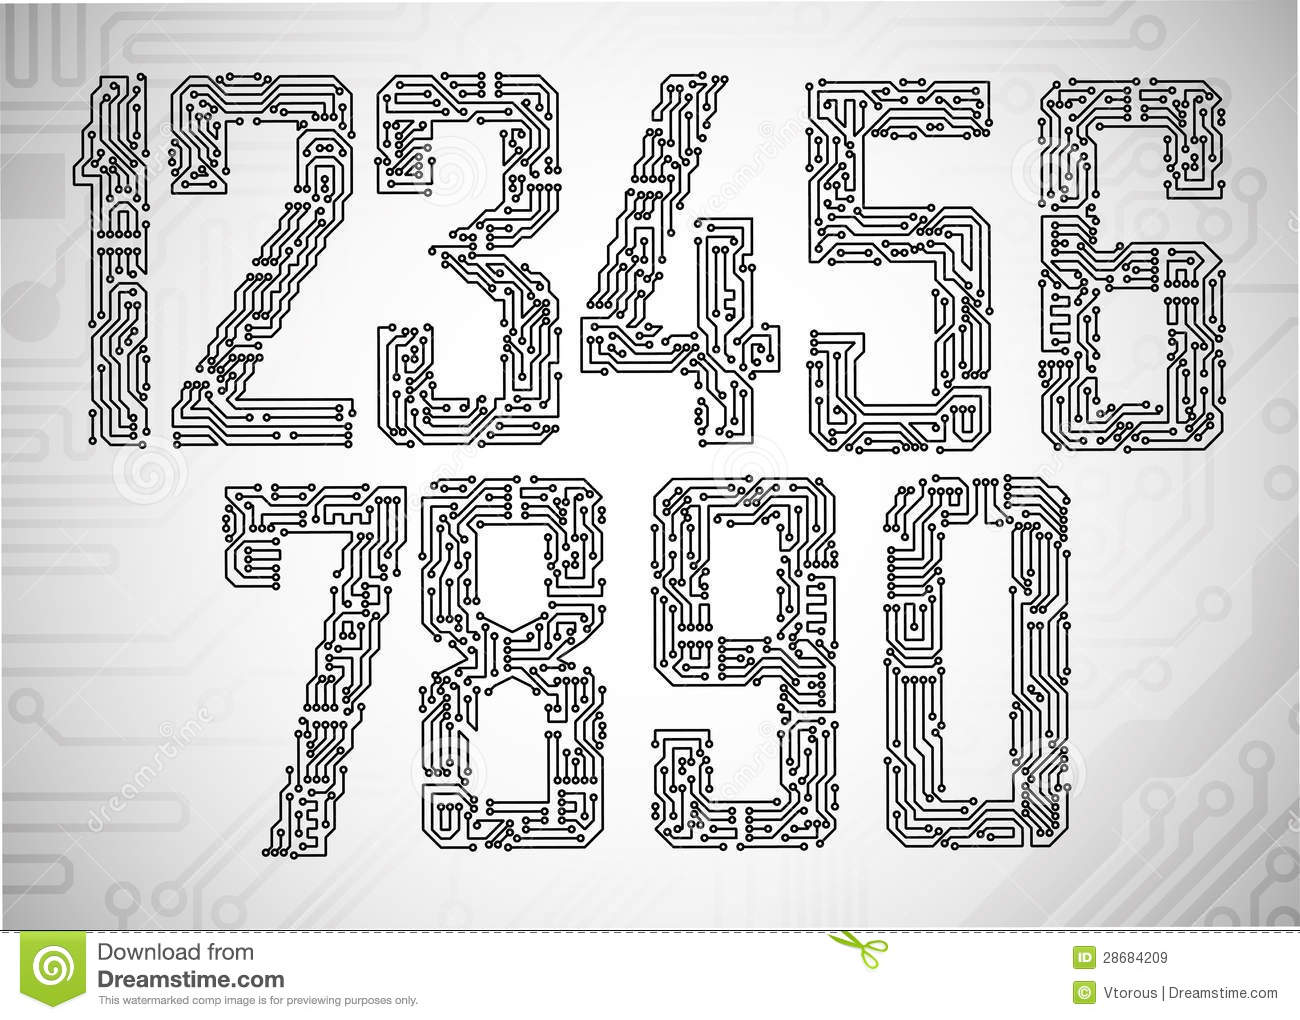 Motherboard Circuit Illustration: Circuit Board Digits Royalty Free Stock Images